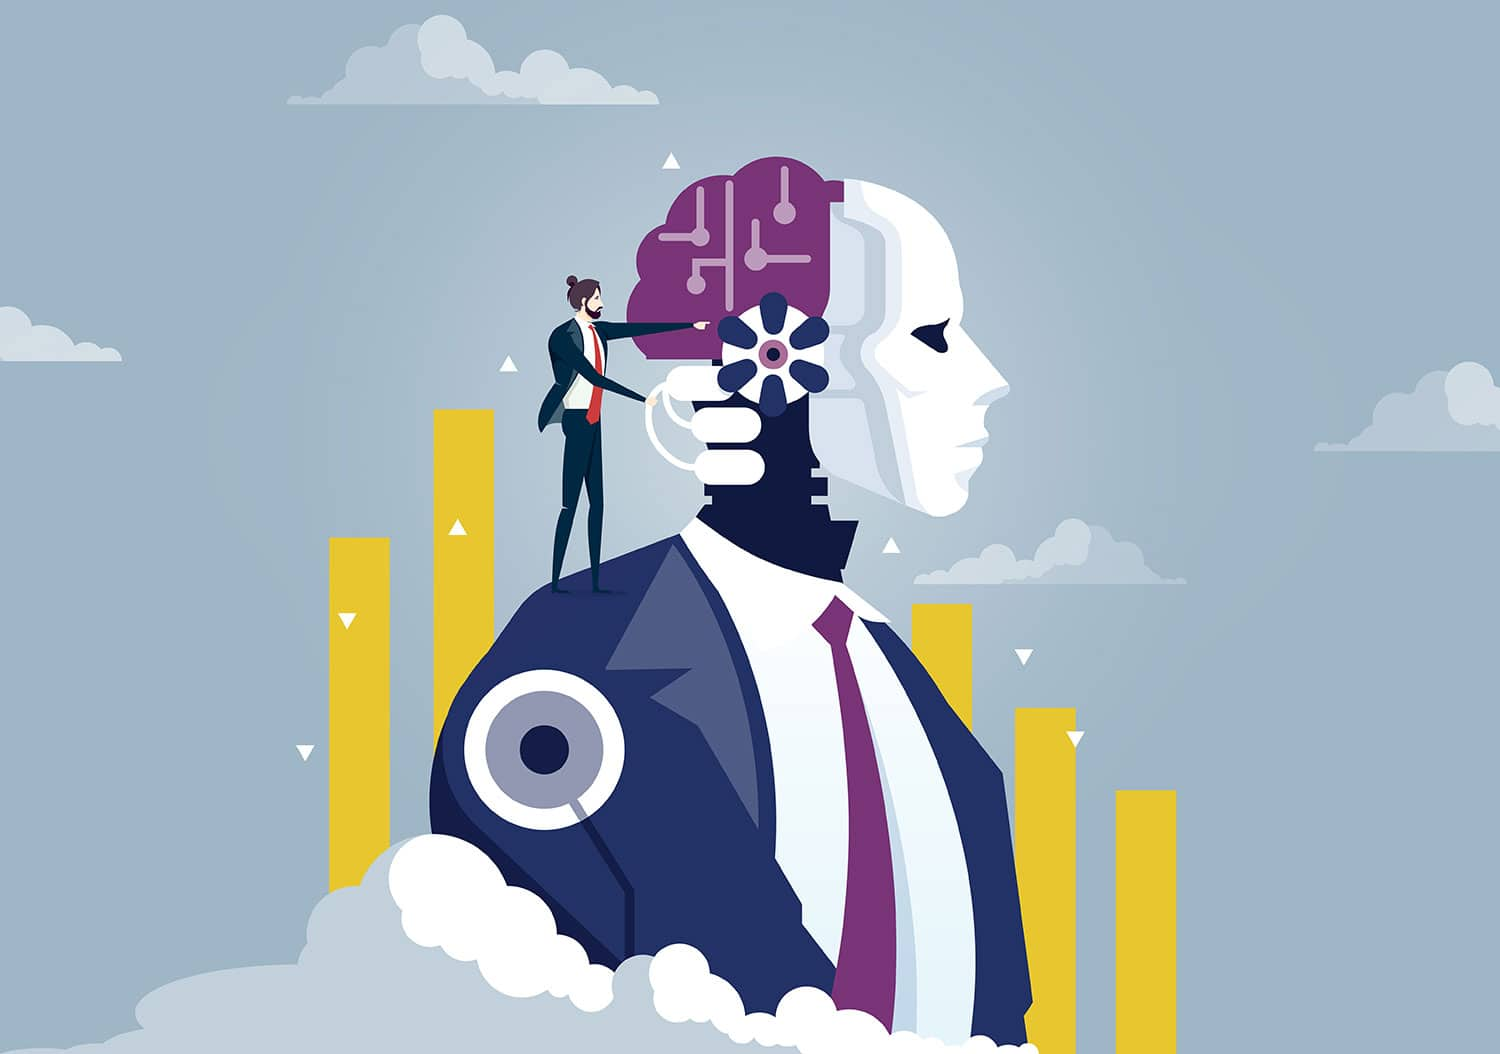 Artificial Intelligence improves business efficiency